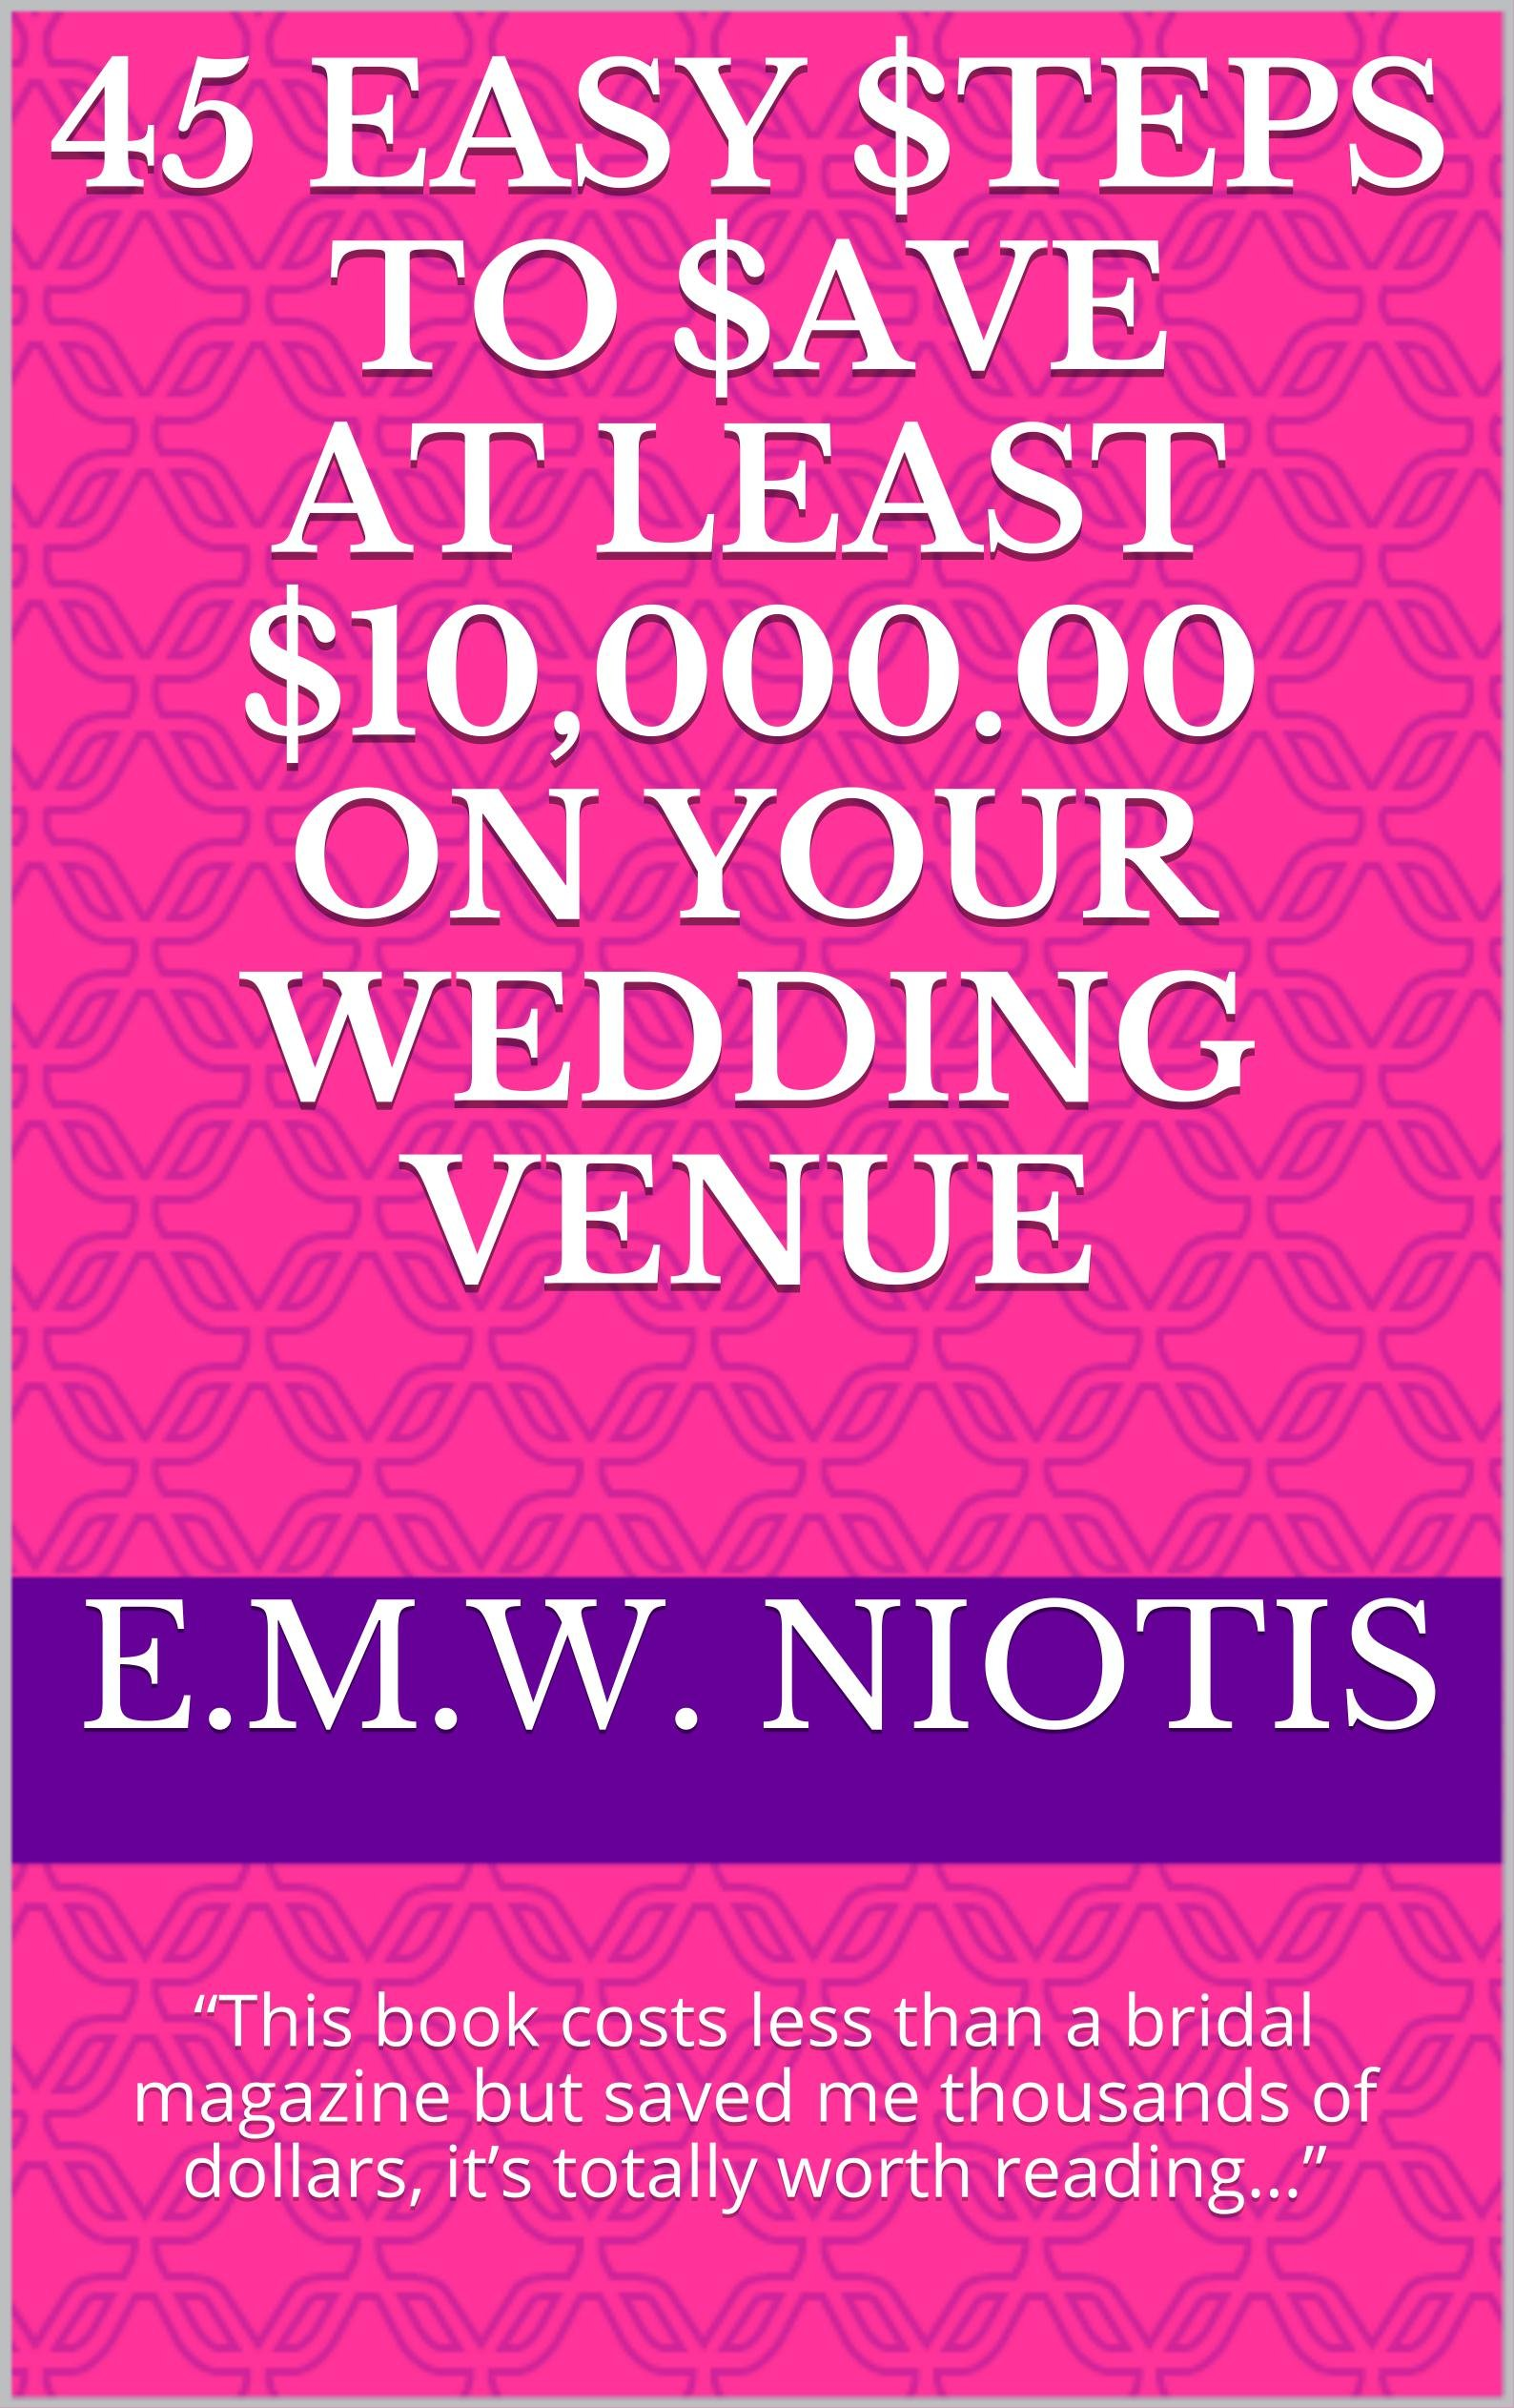 """45 Easy $teps to $ave at Least $10,000.00 on Your Wedding Venue: """"This book costs less than a bridal magazine but saved me thousands of dollars, it's totally ... (Celebrity Wedding Series of Books 1)"""